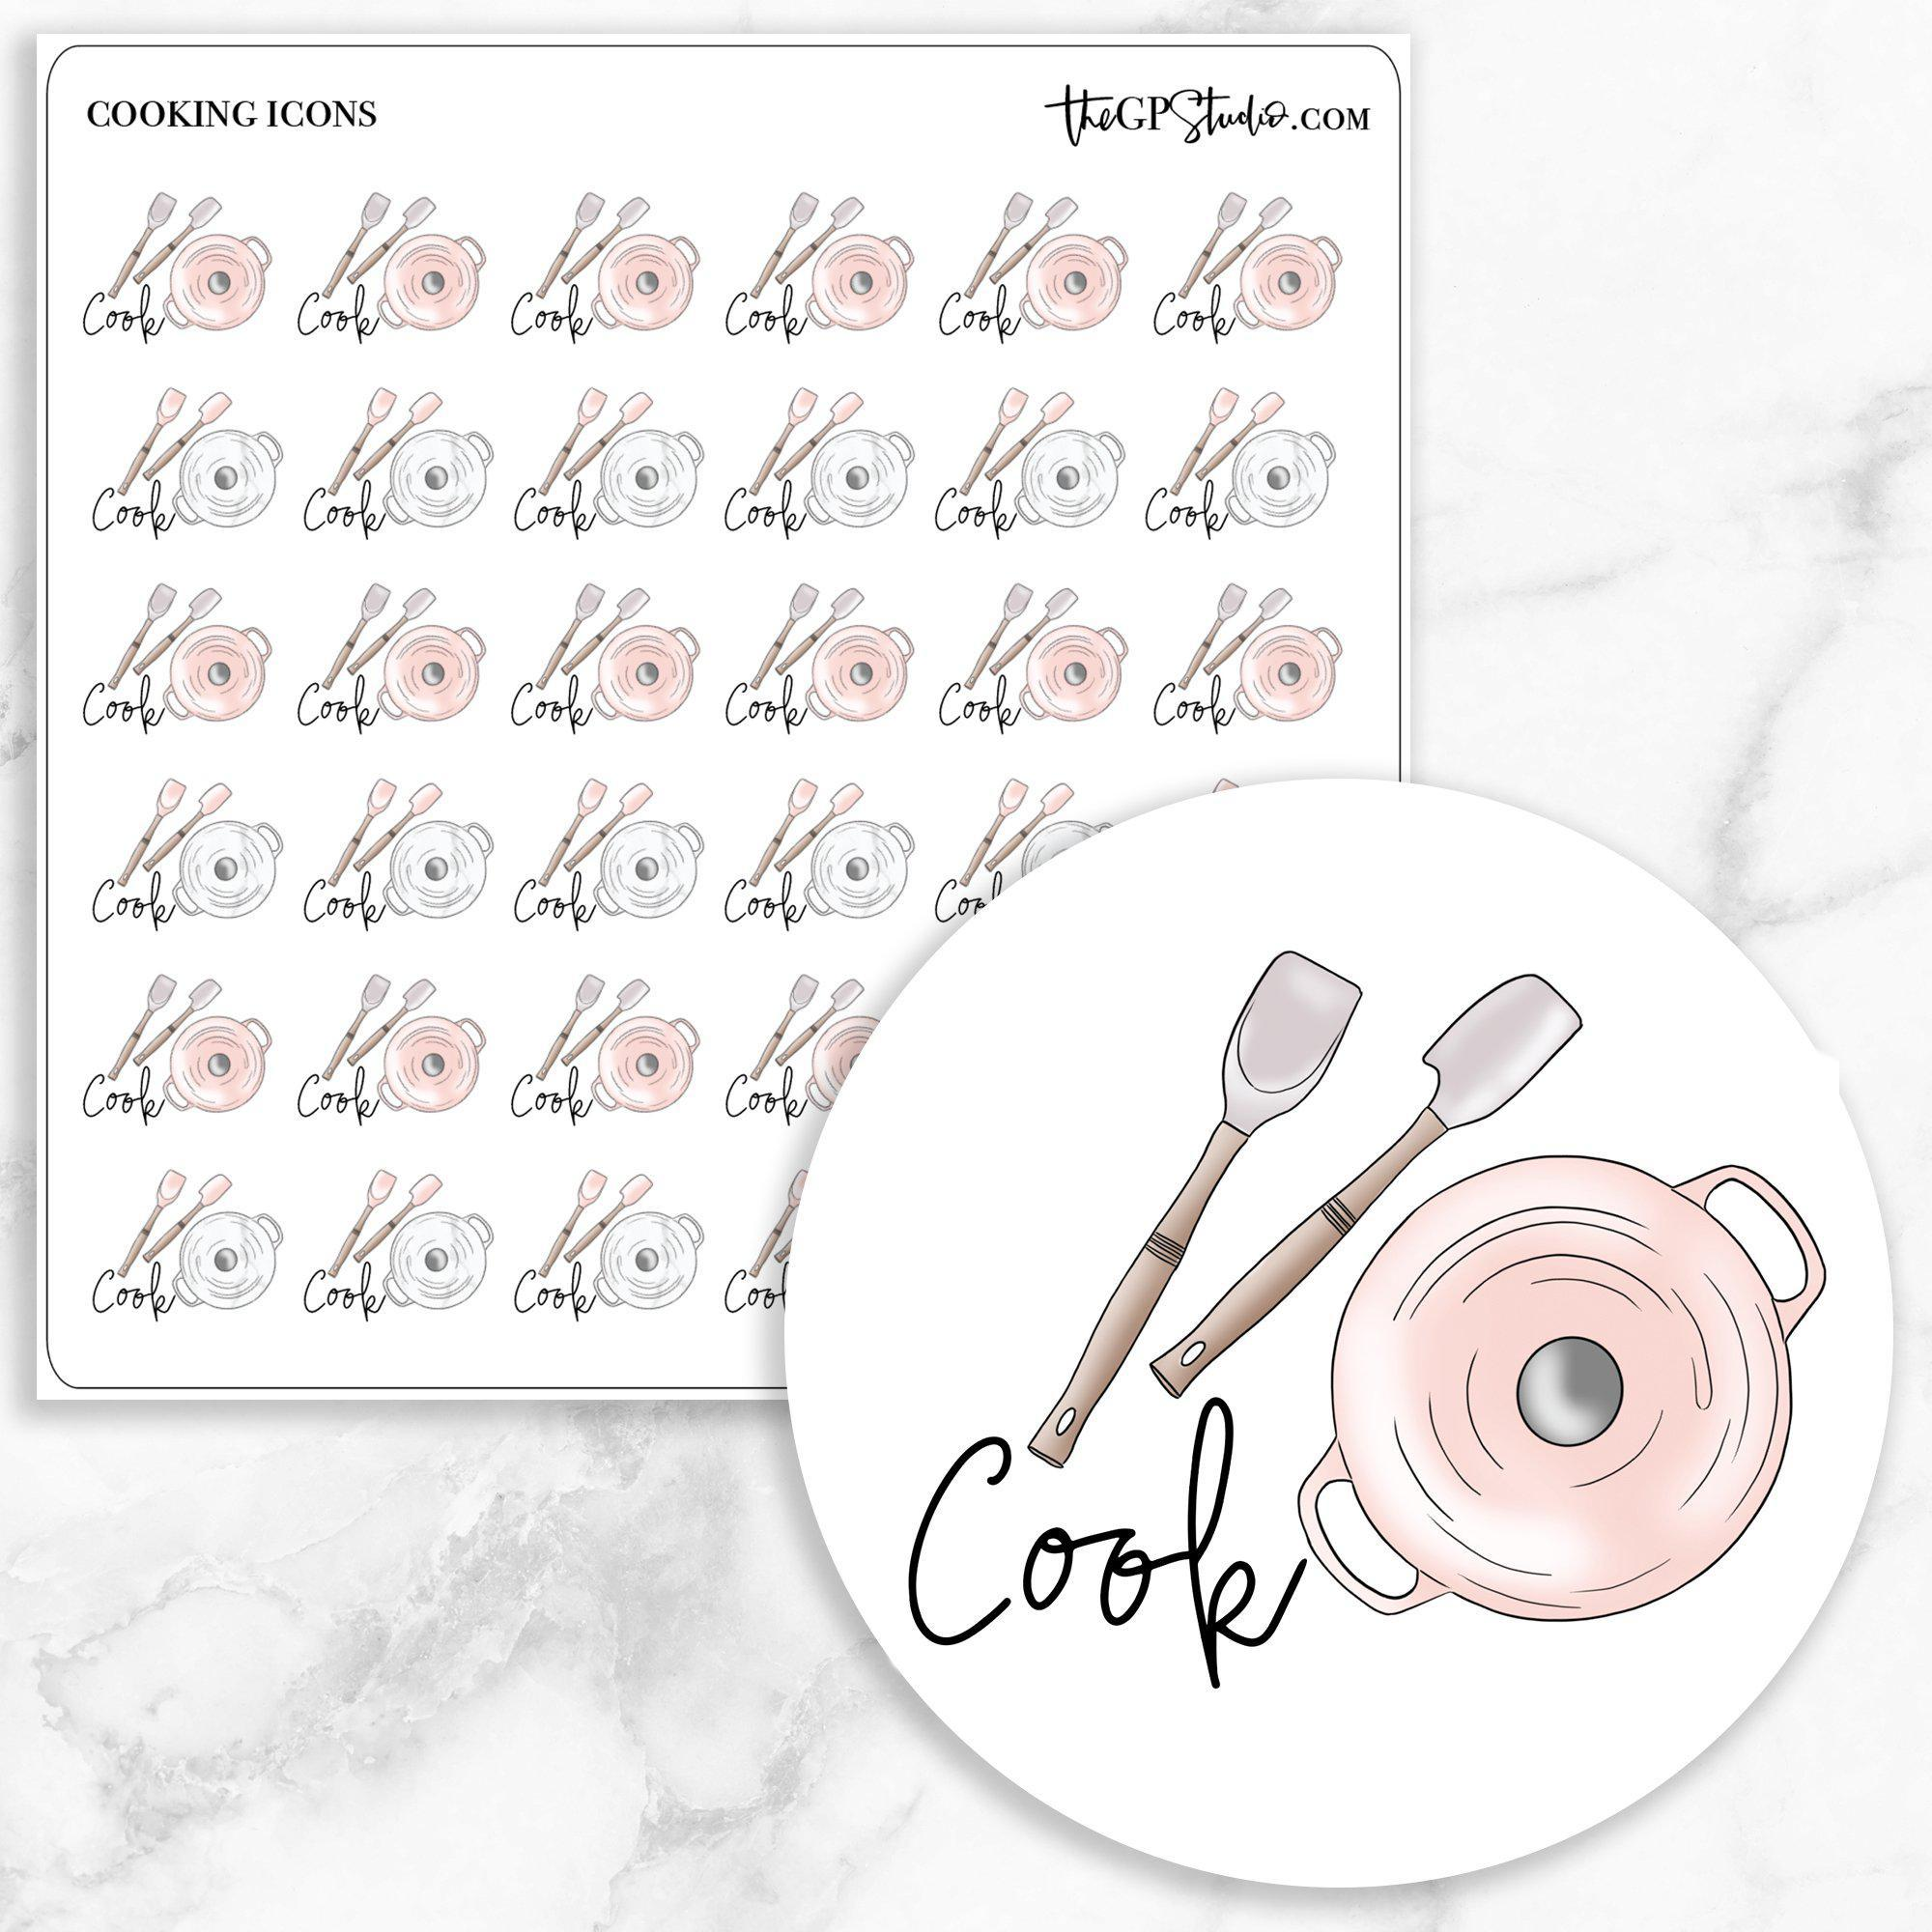 COOKING Icon Planner Stickers-The GP Studio